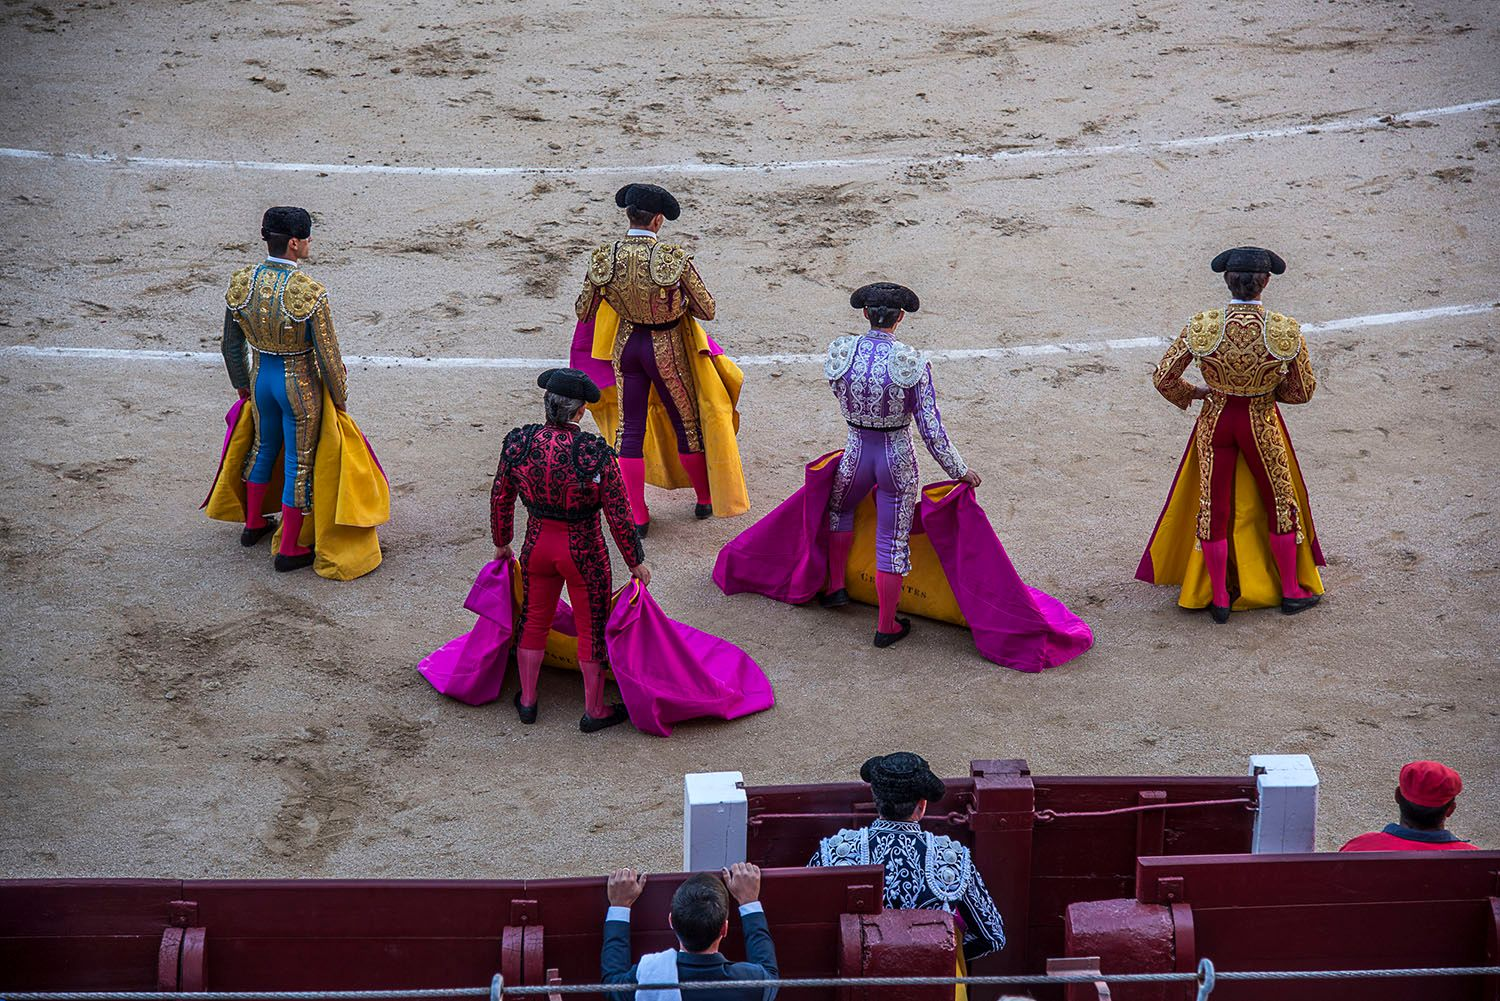 Bull fighters Suits of Light